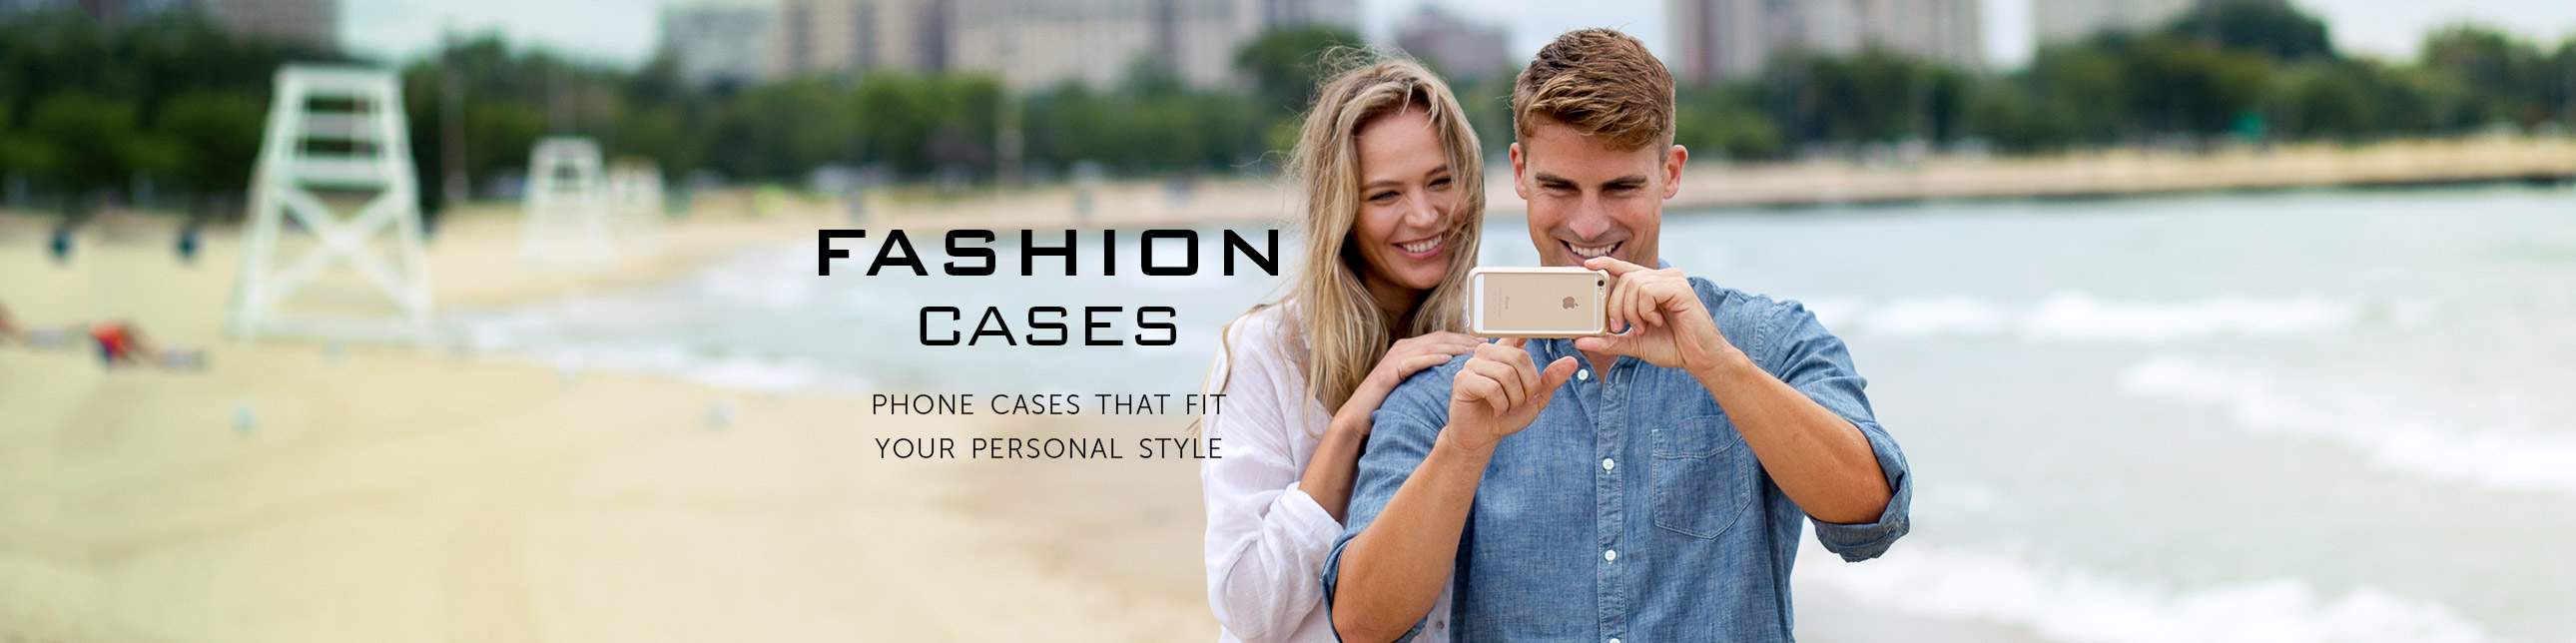 Fashion Cases - Phone cases that fit your personal style.